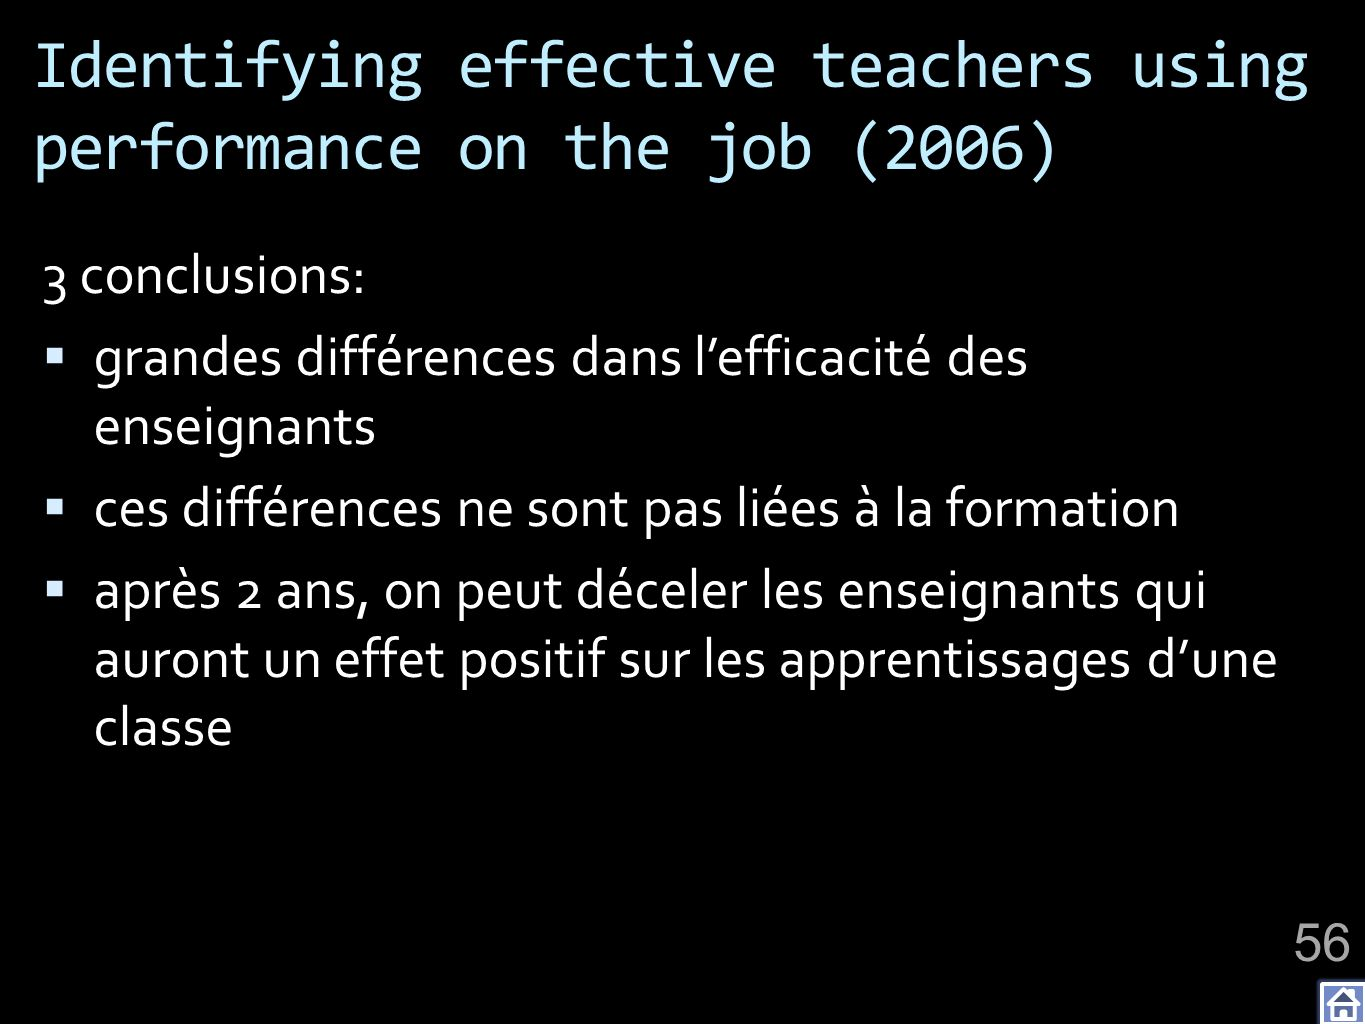 Identifying effective teachers using performance on the job (2006)